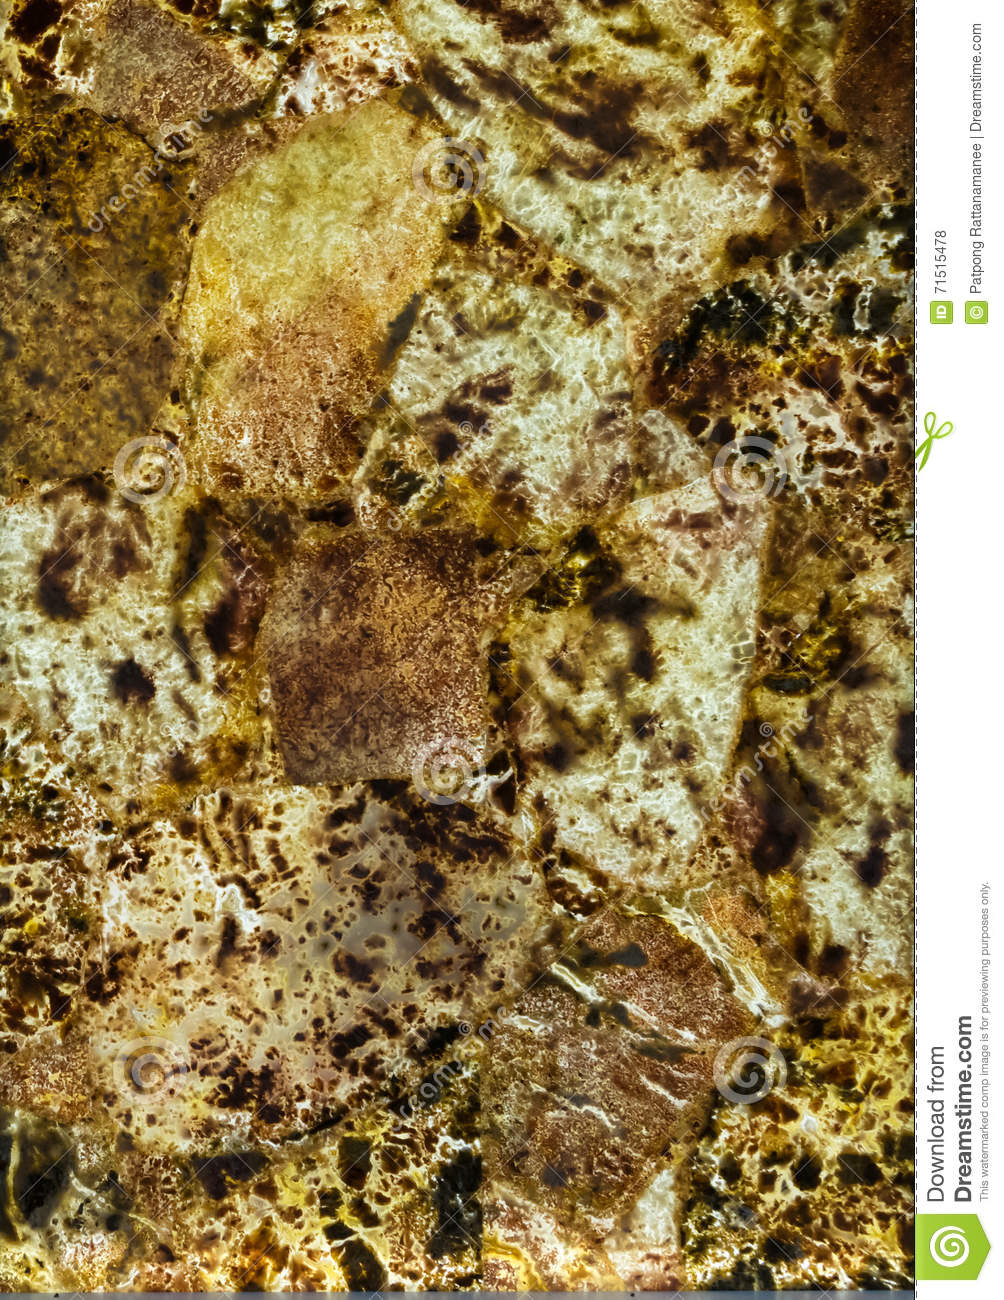 Brown Marble Light Transmission Background Wall Decoration Stock Photo Image Of Interior Natural 71515478